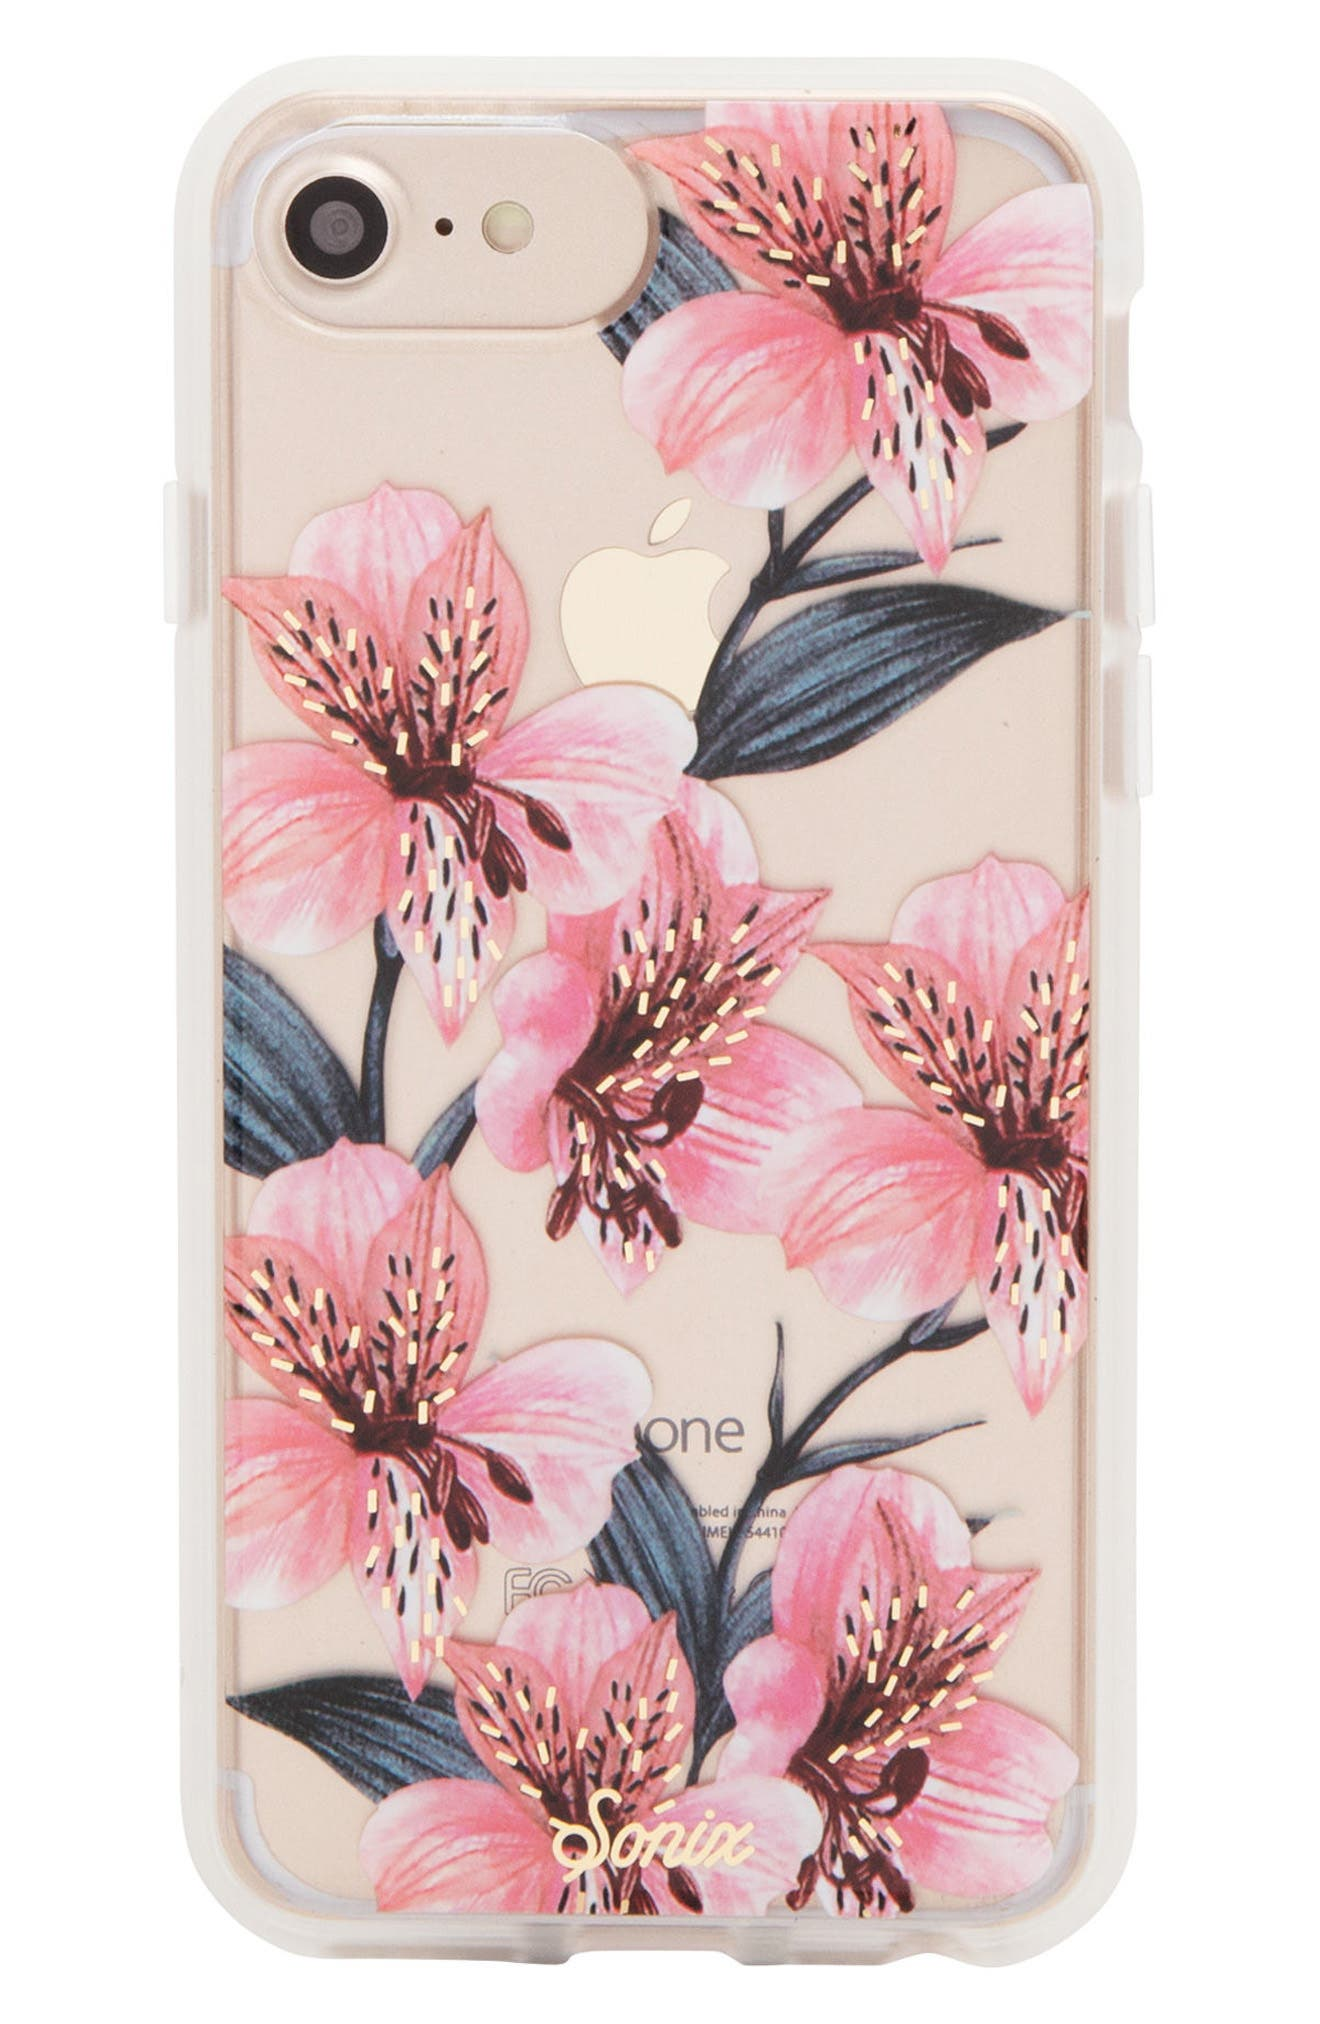 Main Image - Sonix Tiger Lily iPhone 6/6s/7/8 & 6/6s/7/8 Plus Case